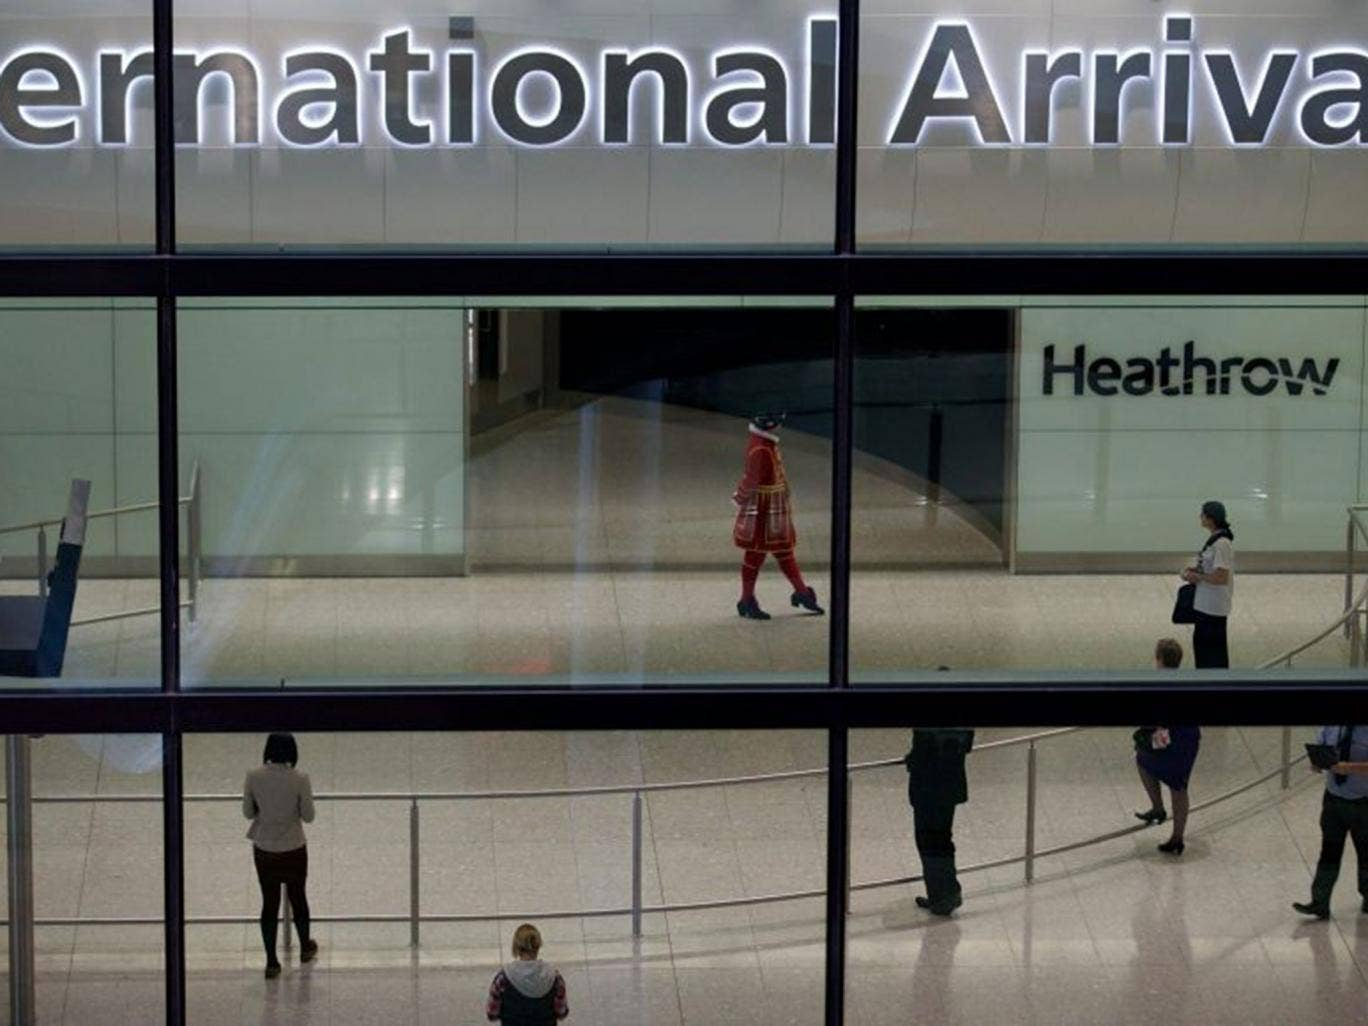 Kenyans are being warned not to travel to Heathrow